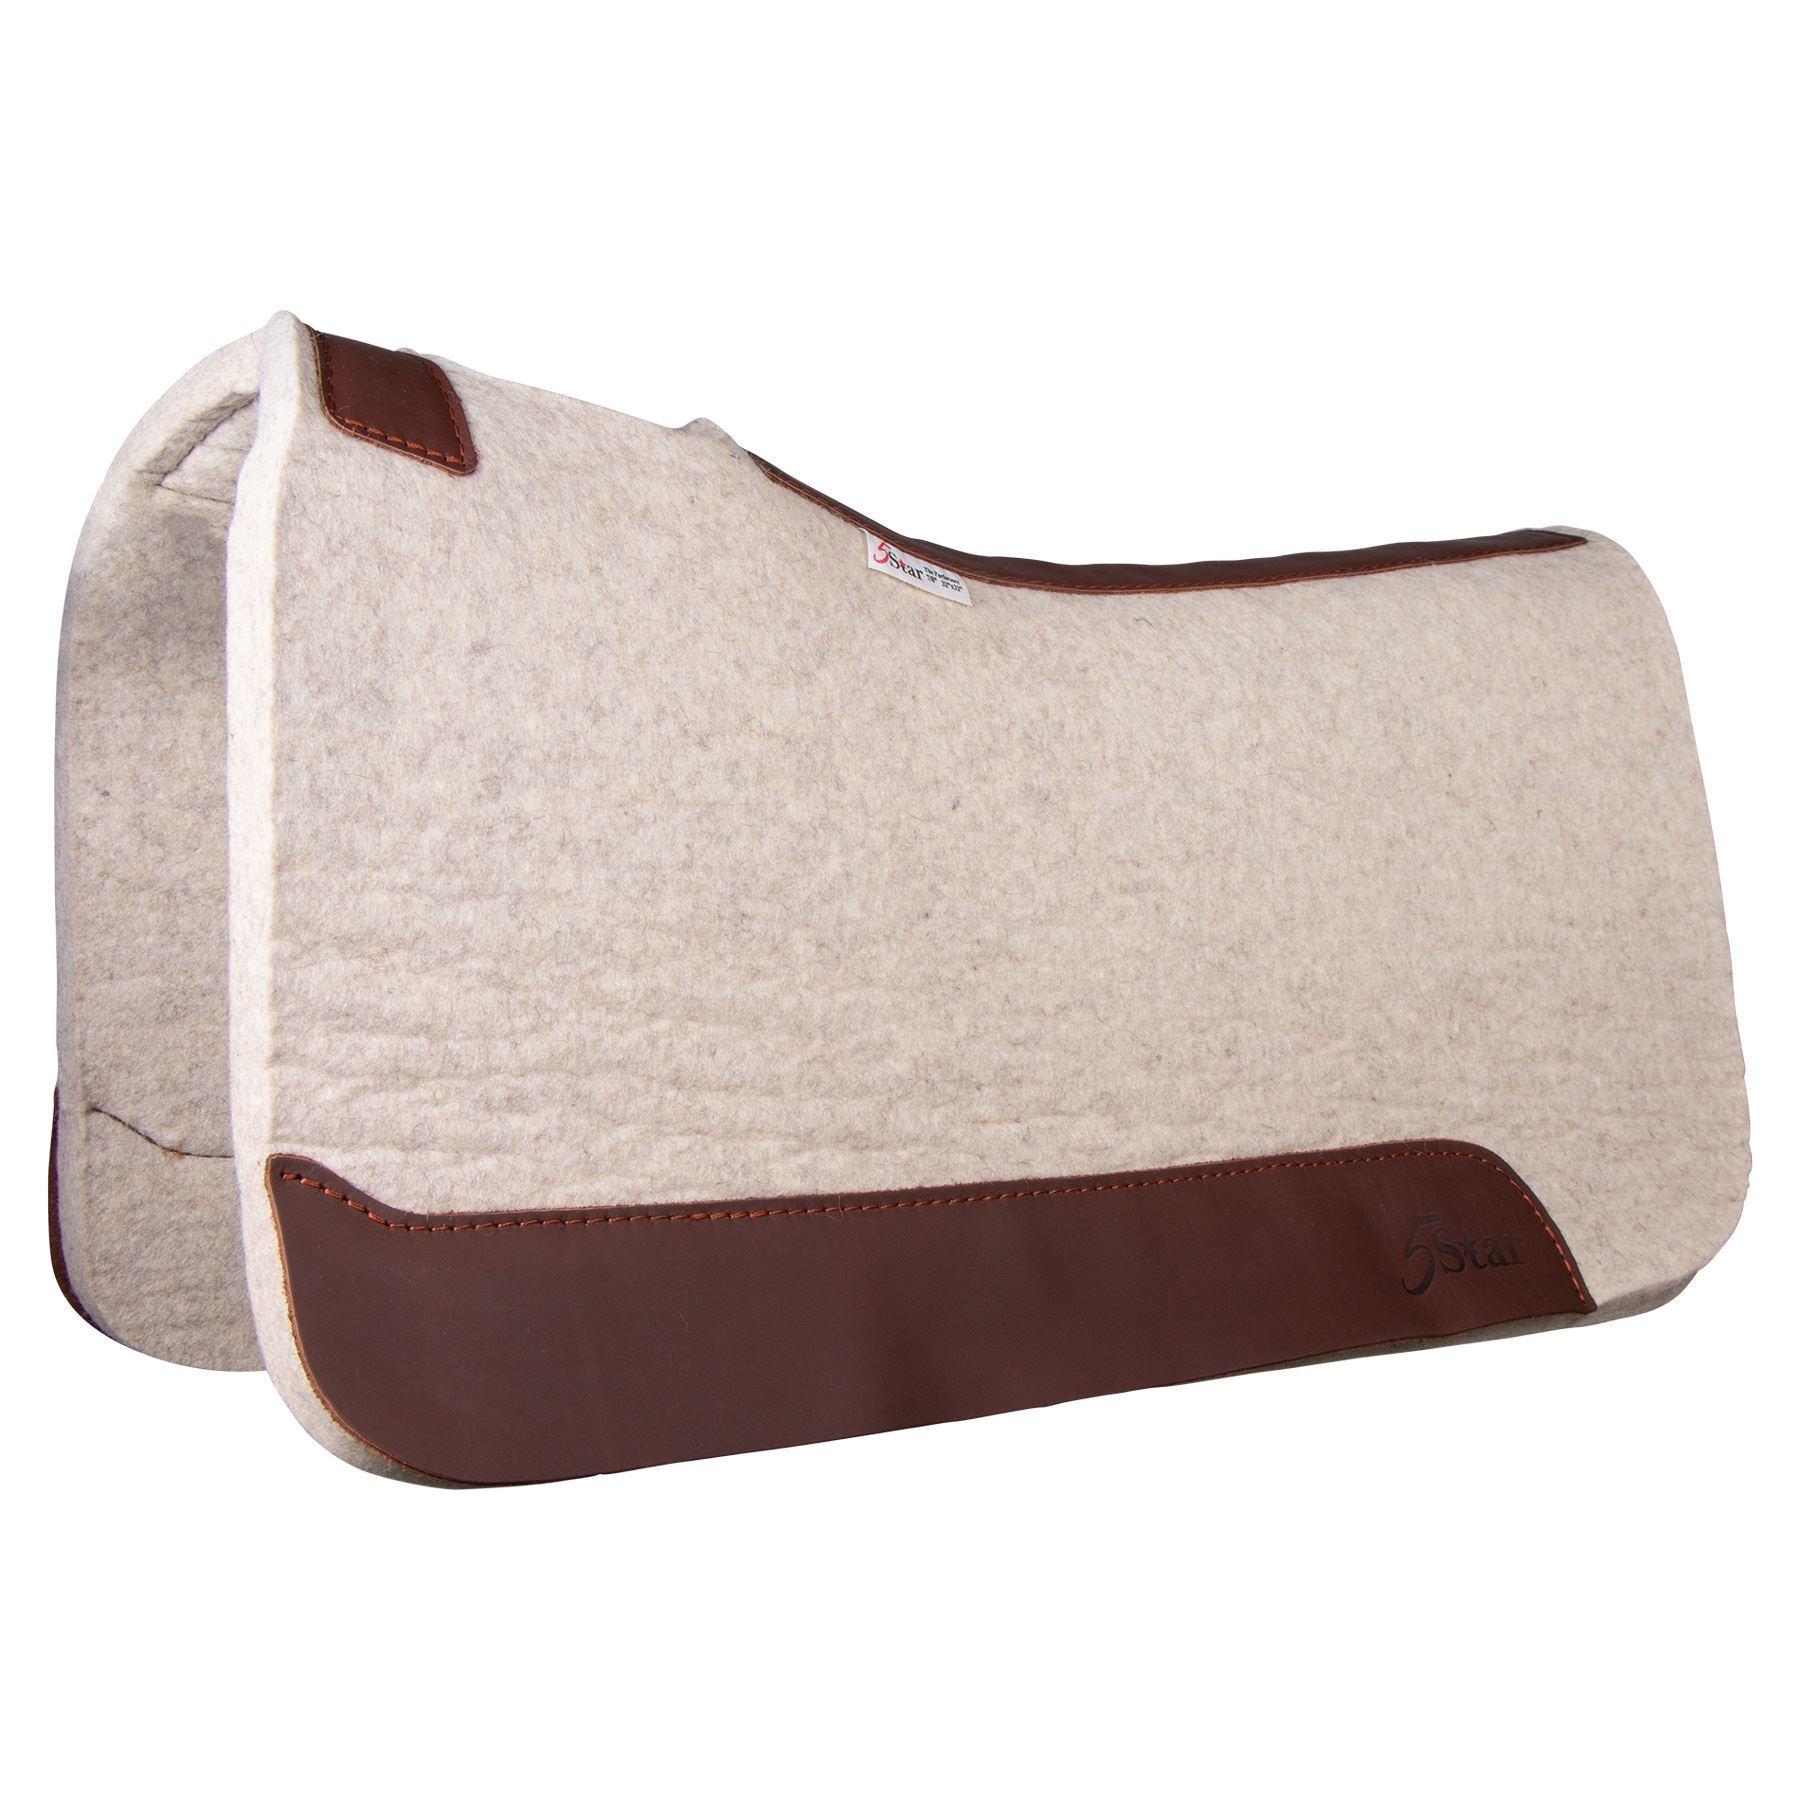 "5 Star Performer 7/8"" Western Saddle Pad 32""x32"""